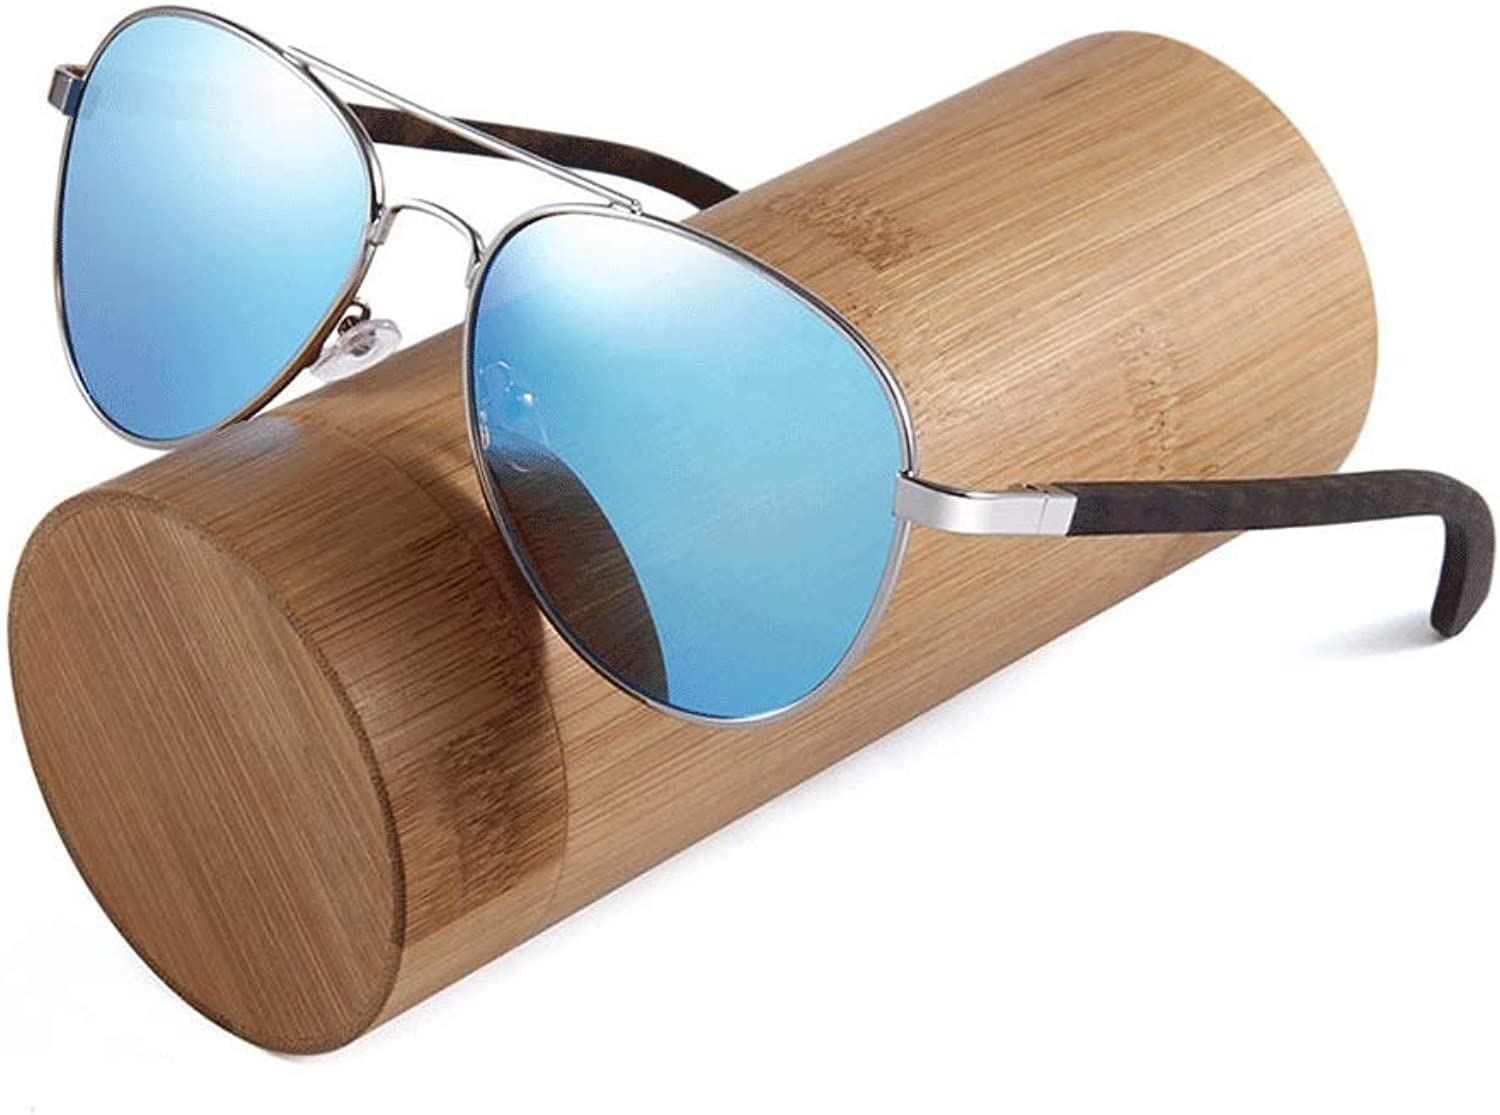 Wood Sunglasses Polarized for Men and Women Blocking 100% UV Sunglasses (color   blueee1, Size   Casual Size)